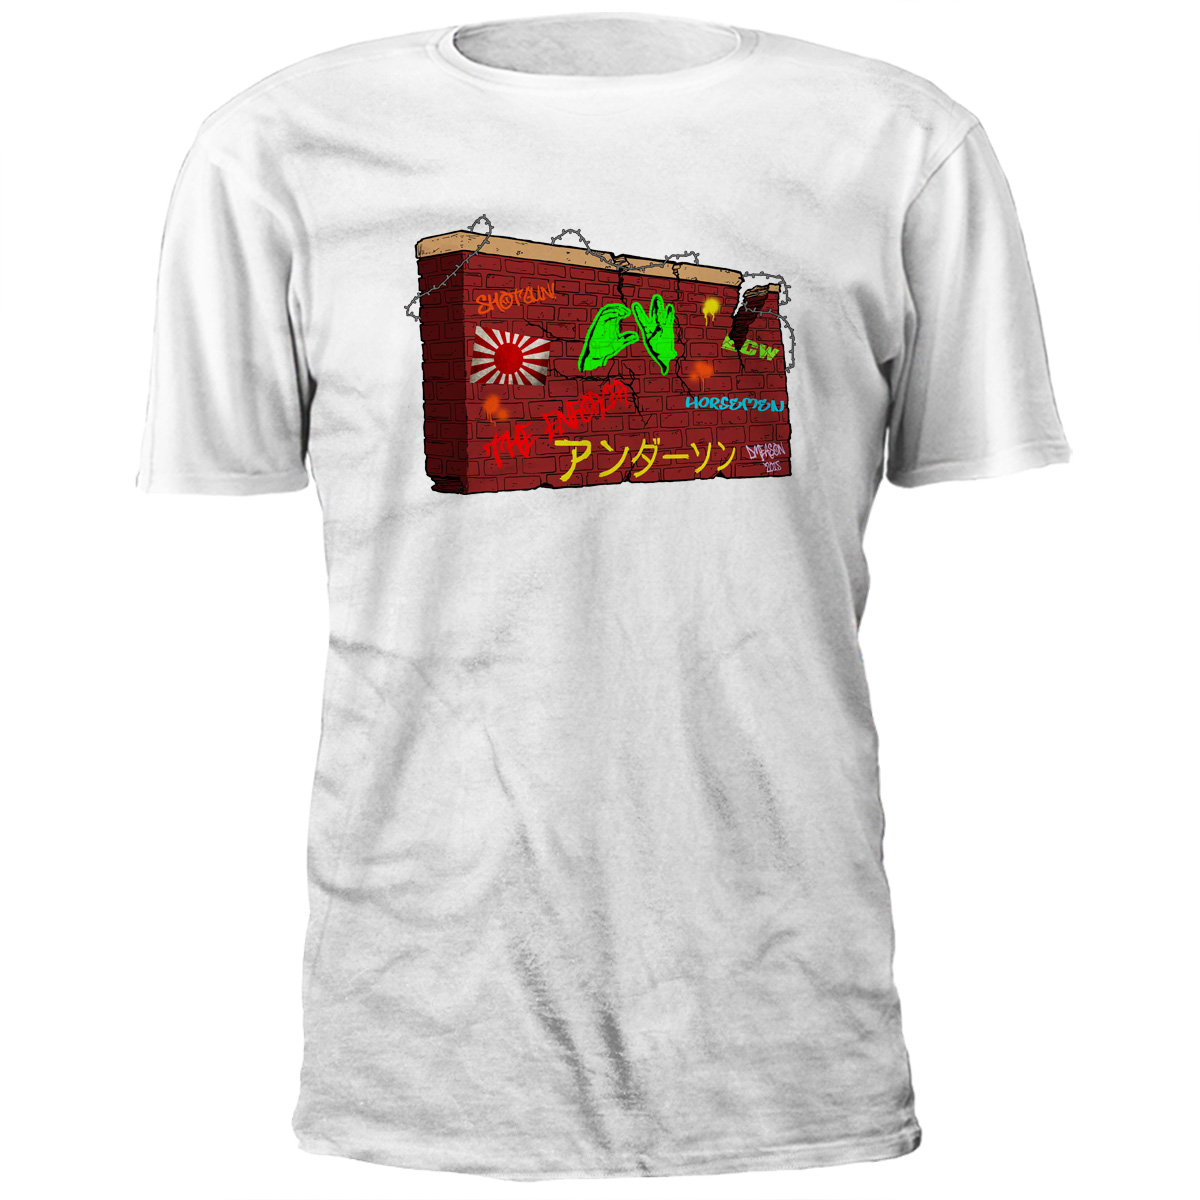 CW Anderson Wall Of History T-shirt